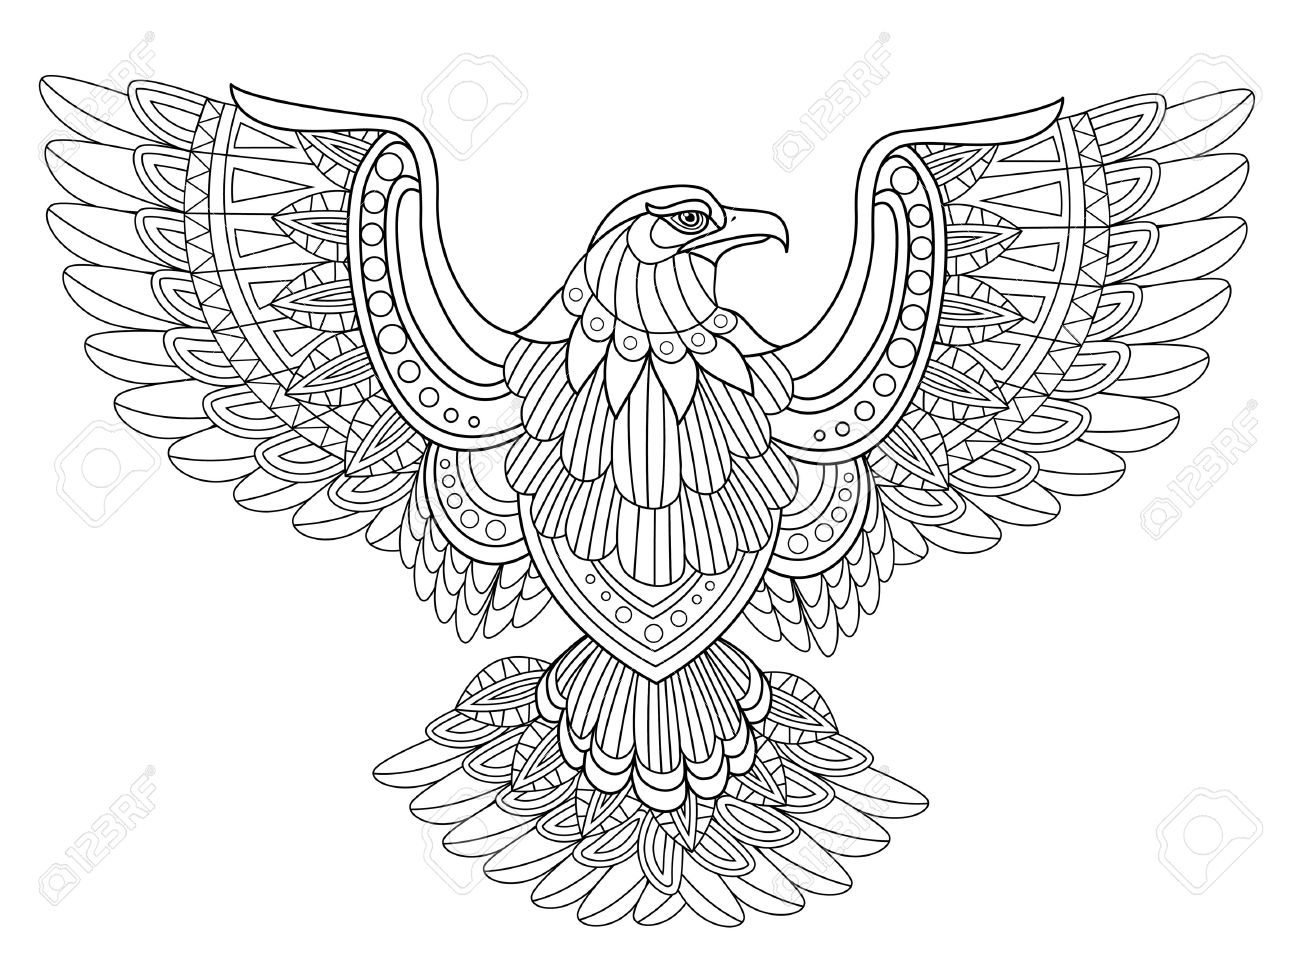 1300x975 Harpy Eagle Coloring Page Printable Pages Click The To View